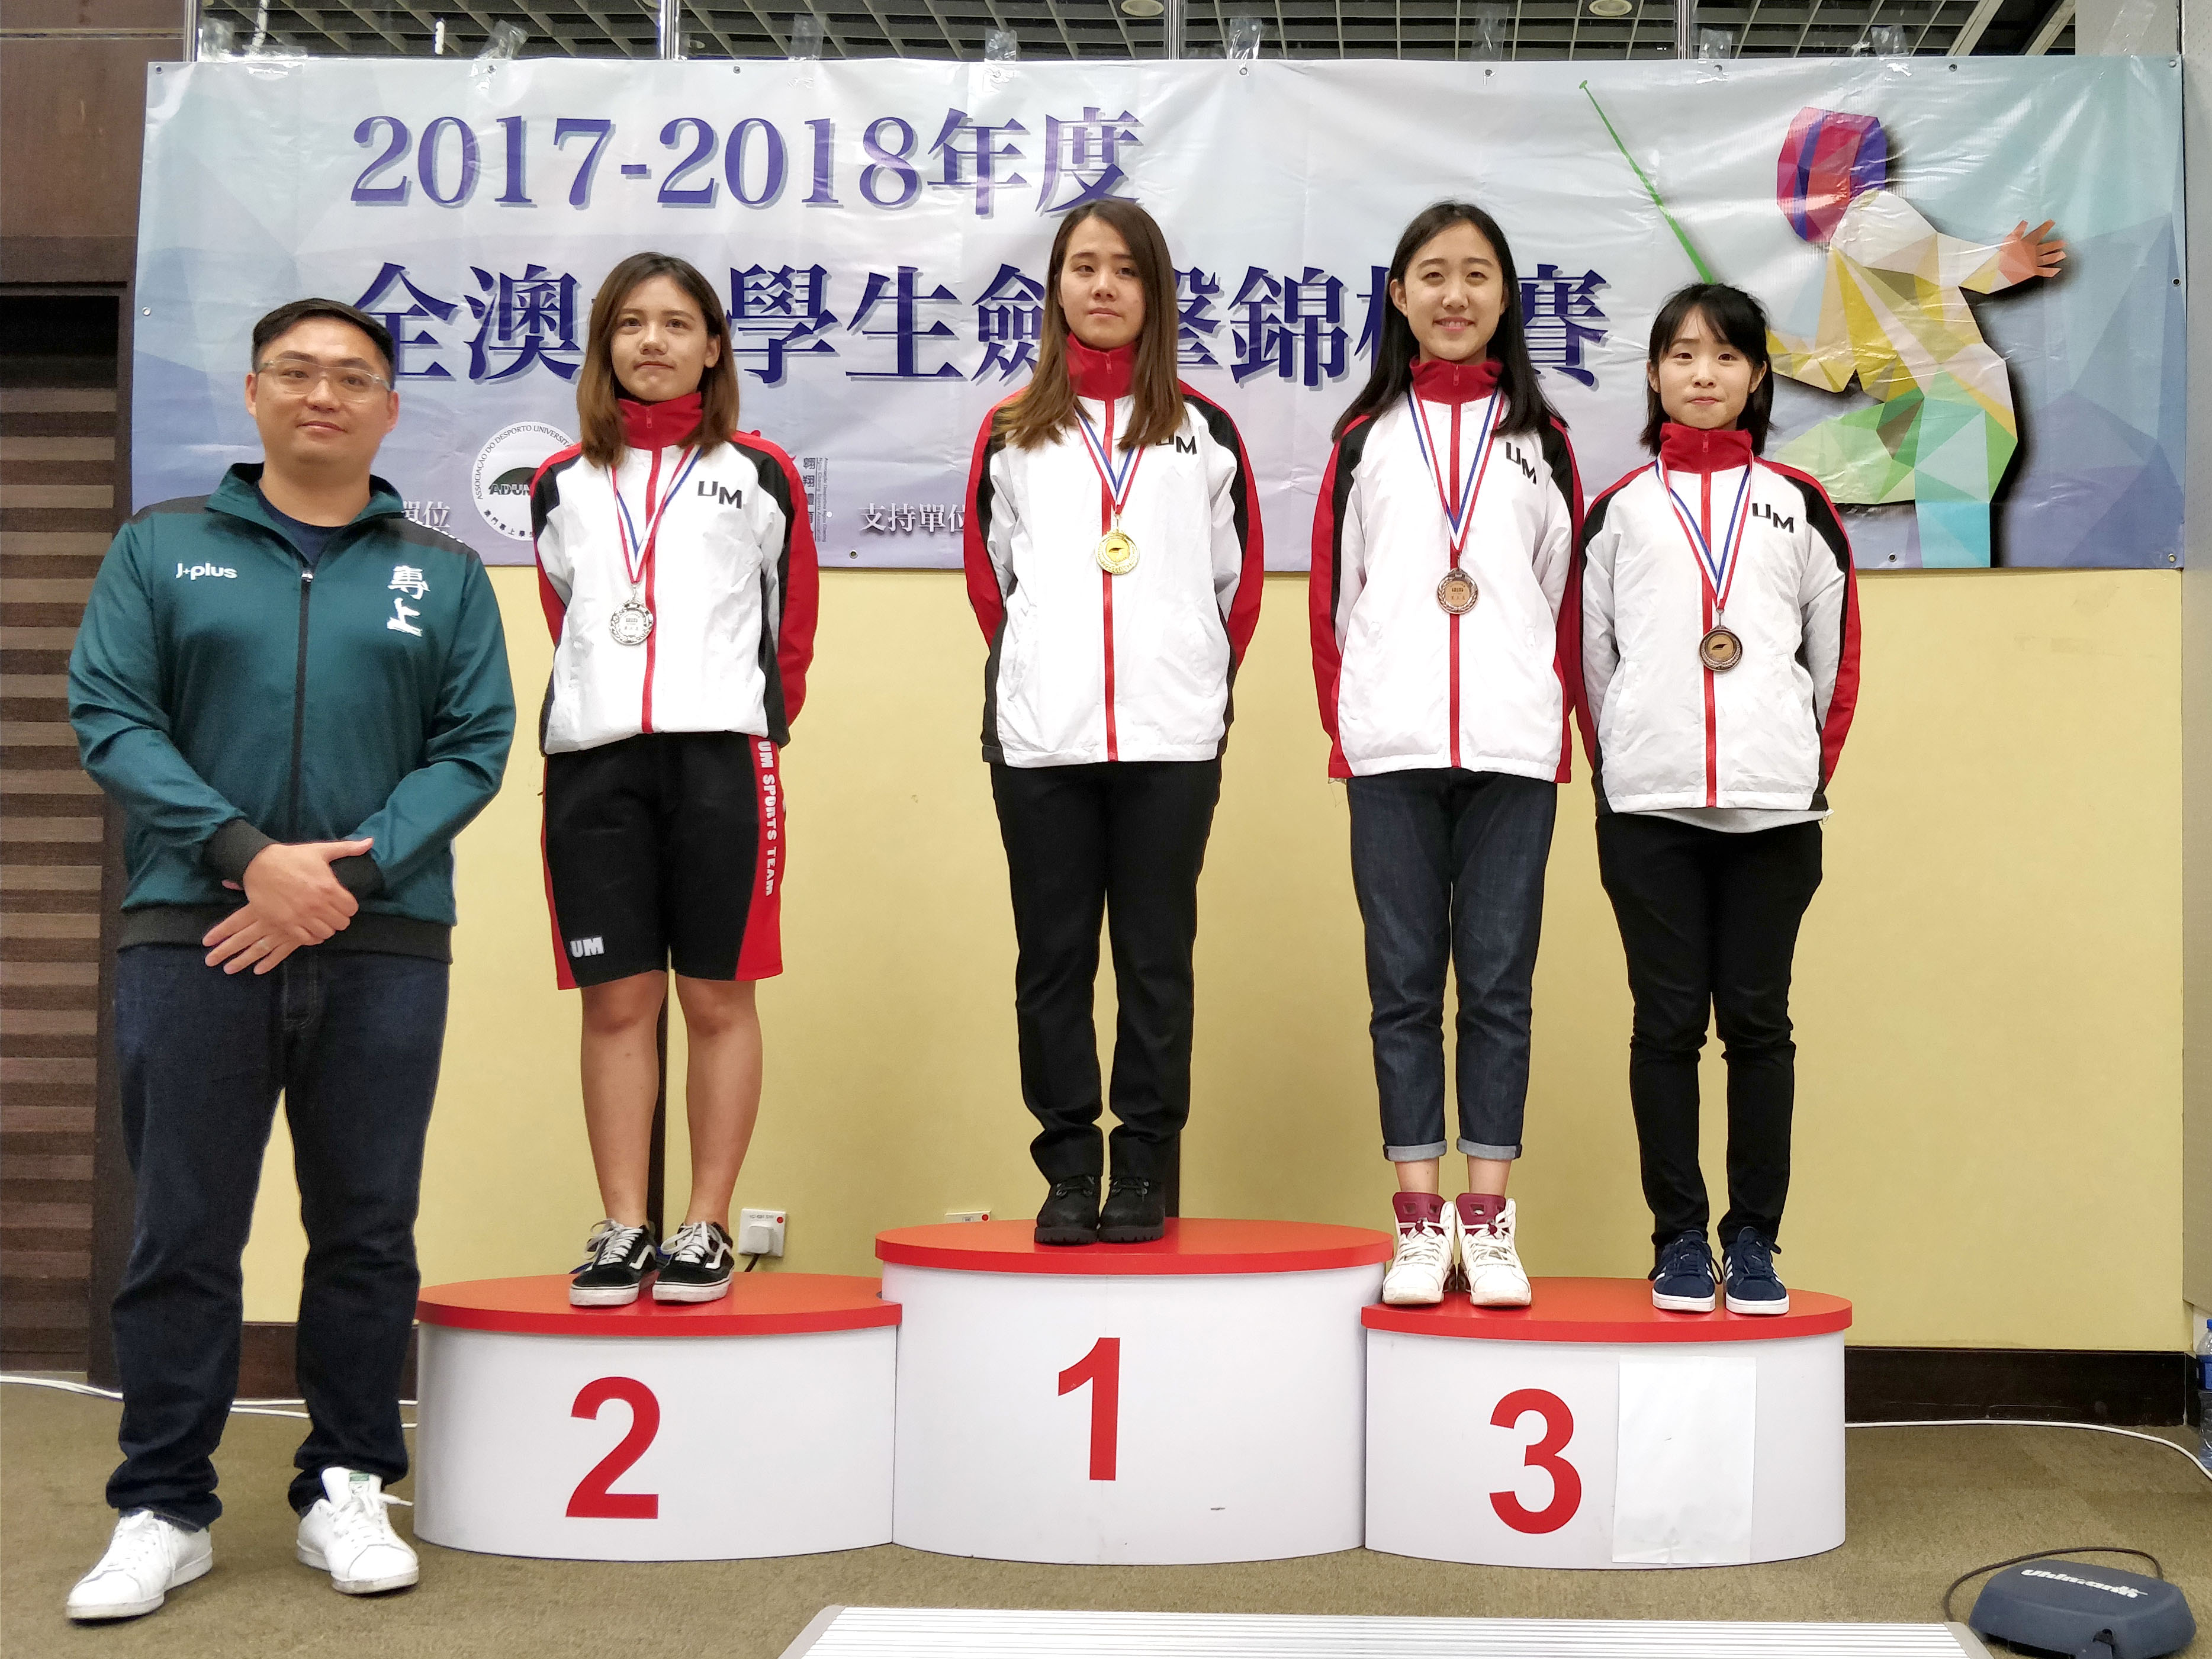 UM swept all the prizes in the women's foil category